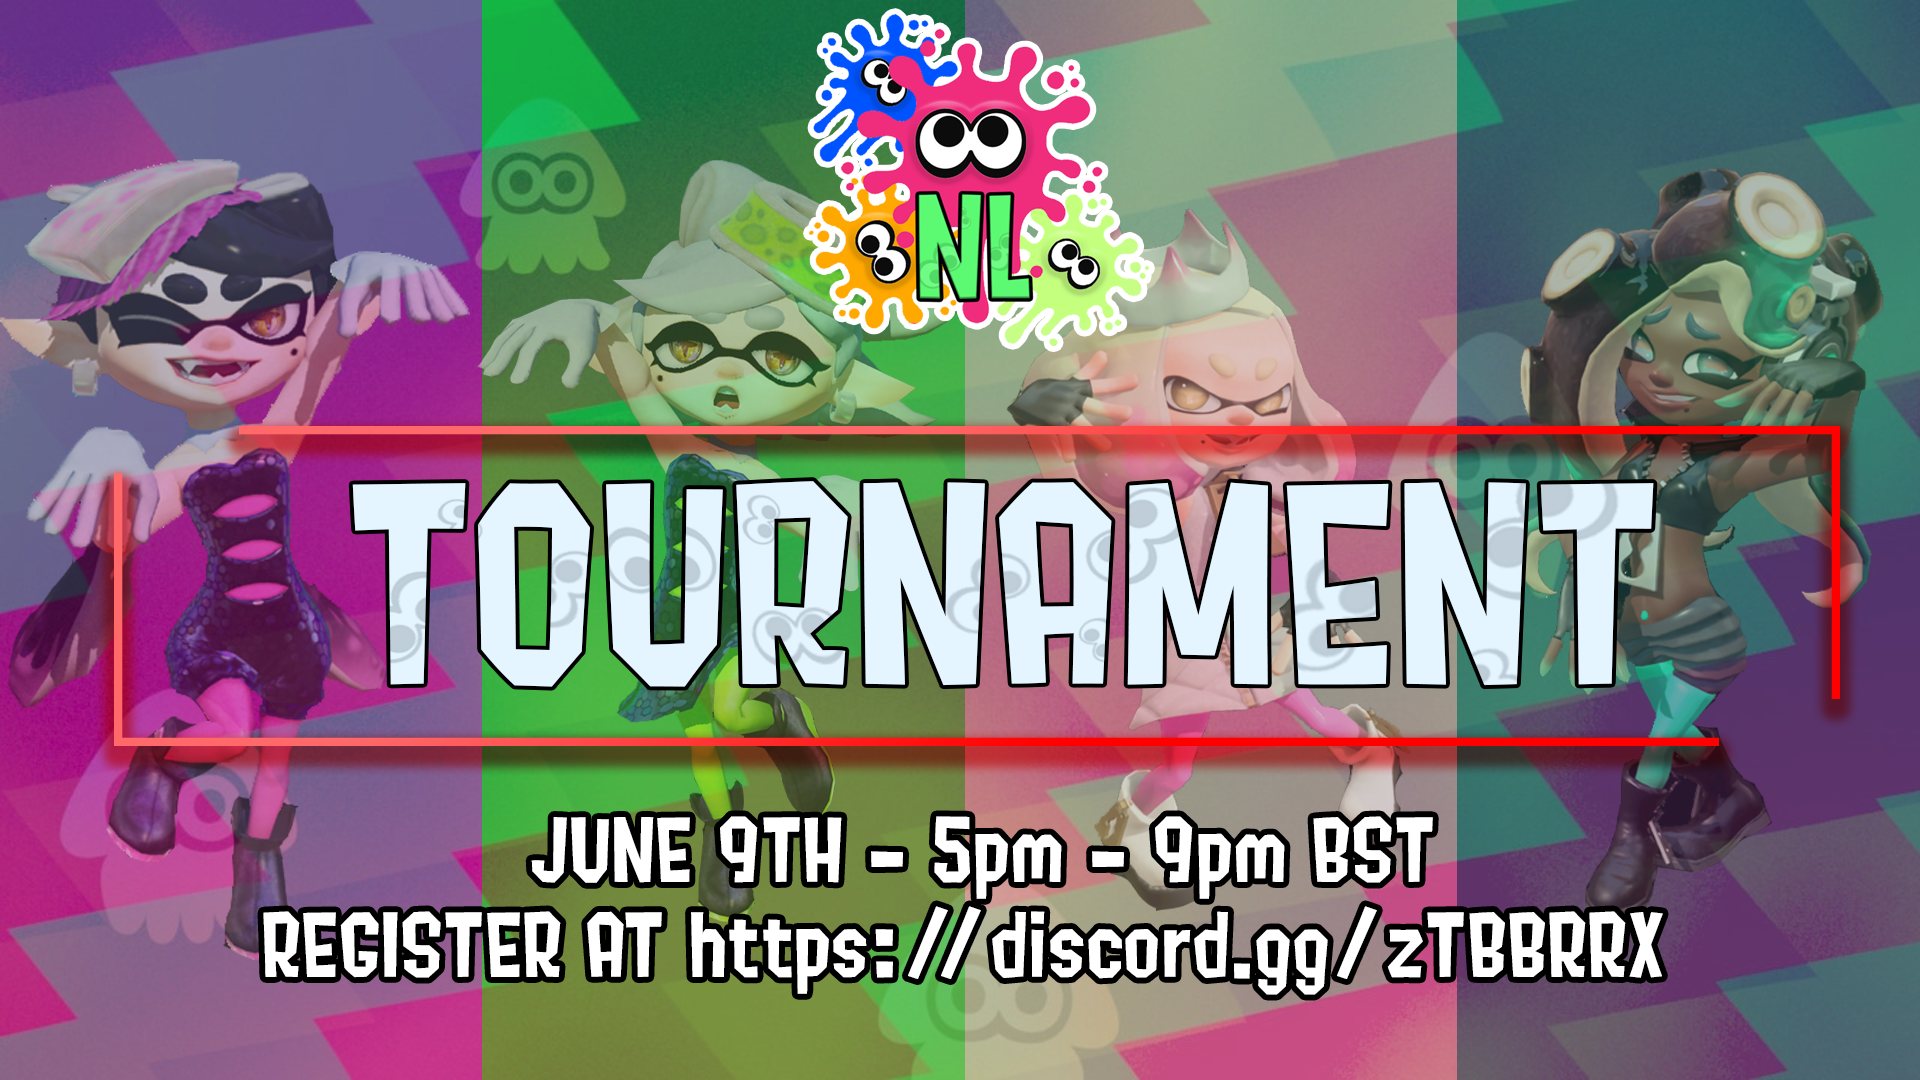 The Splatoon 2 Tournament takes place on June 9th from 5pm BST!